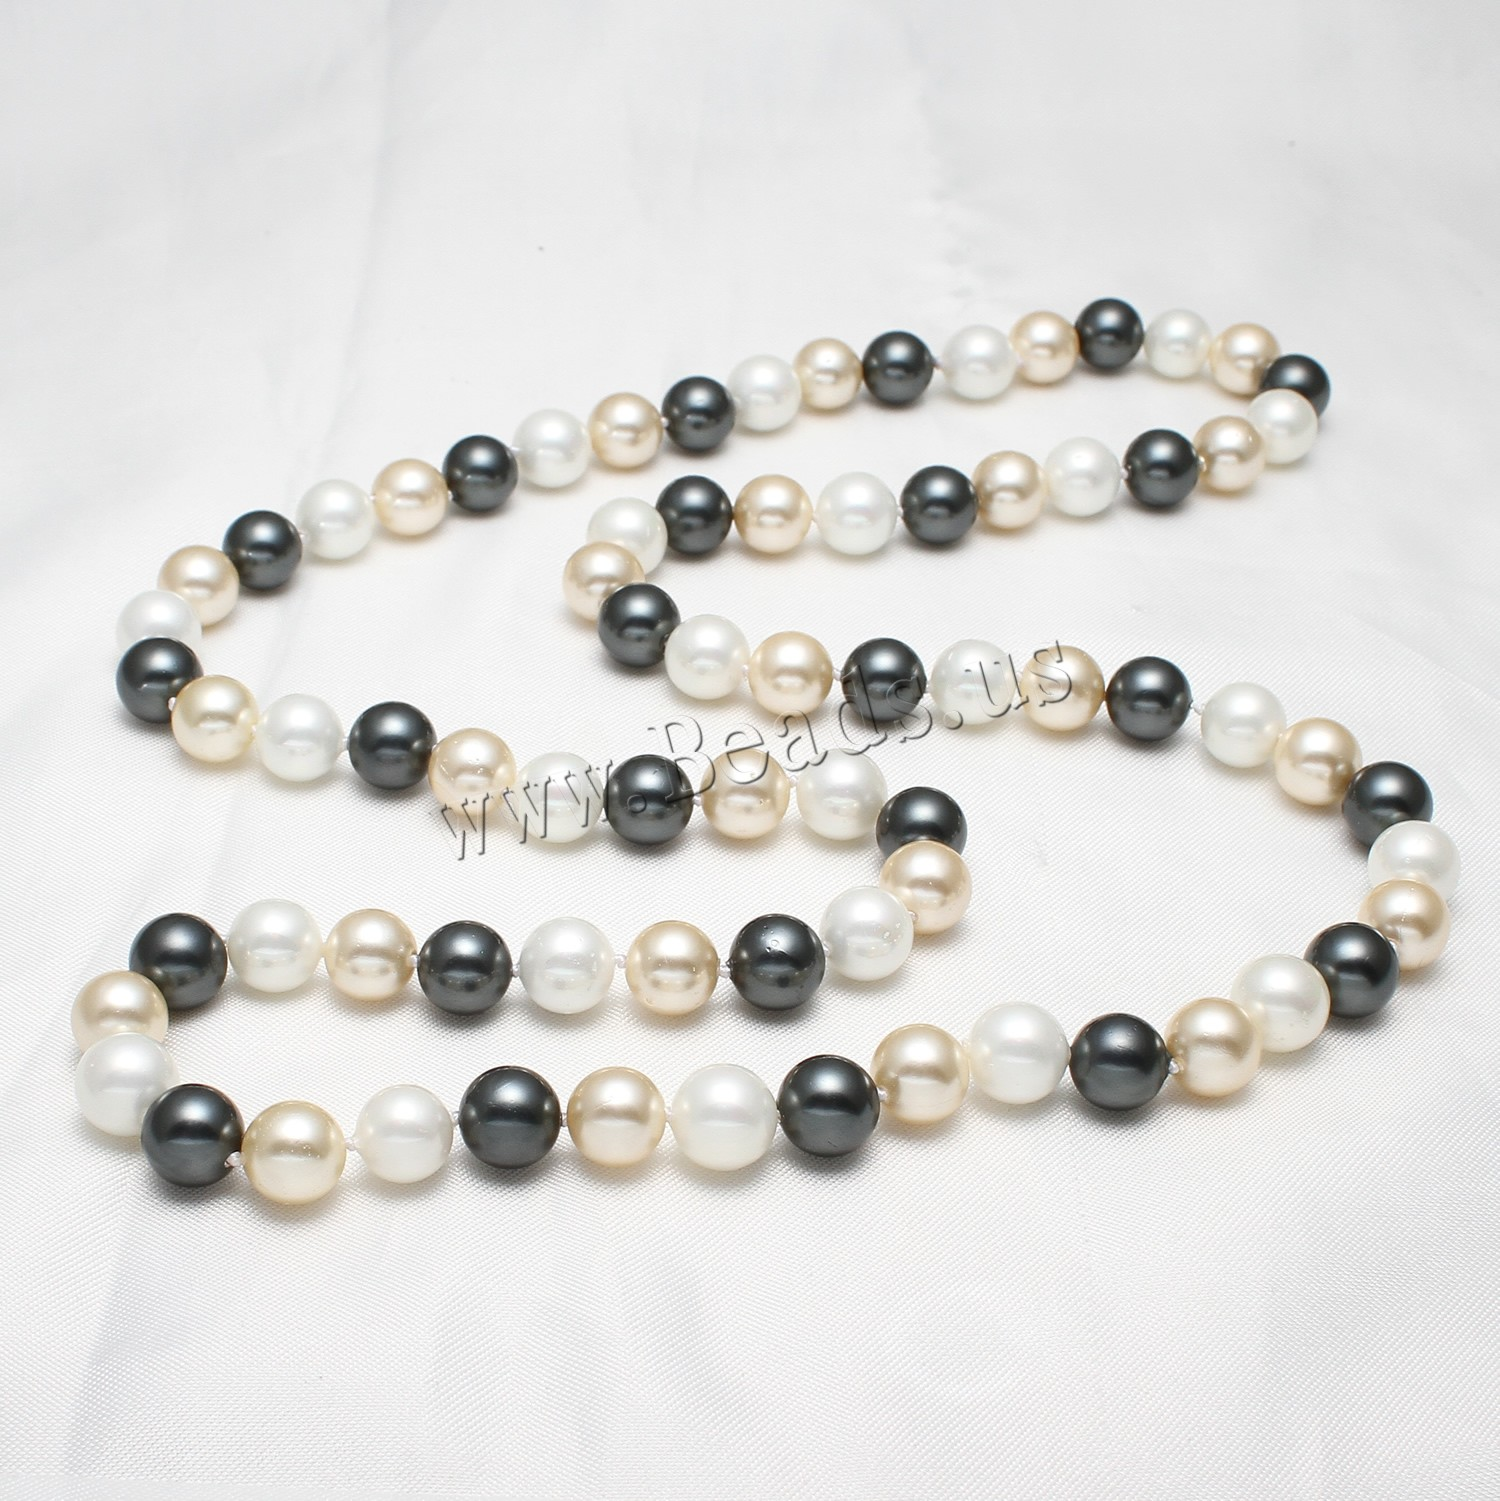 Buy Freshwater Pearl Sweater Chain Necklace South Sea Shell 5cm extender chain Round woman 10mm Sold Per Approx 32 Inch Strand